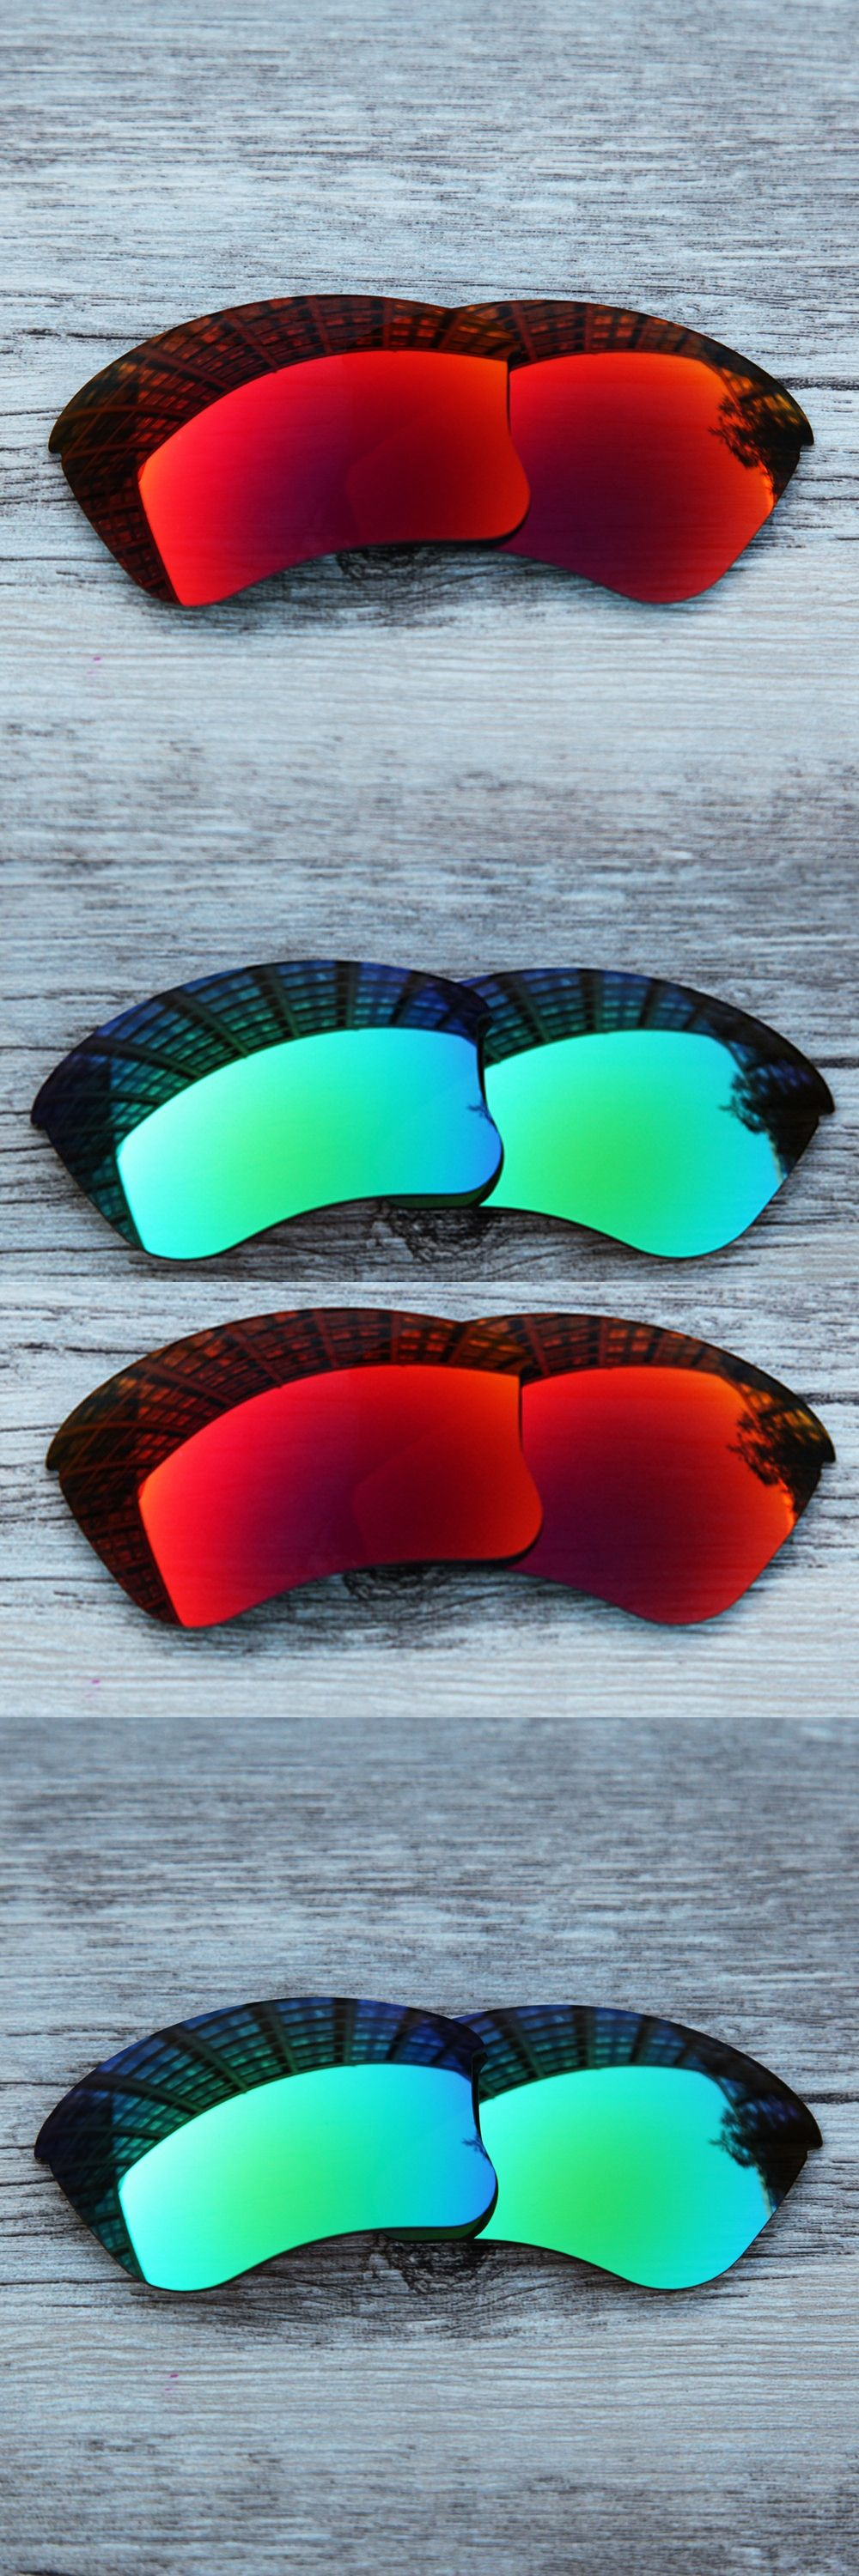 Inew polarized replacement lenses for Flak Jacket XLJ green and red ...